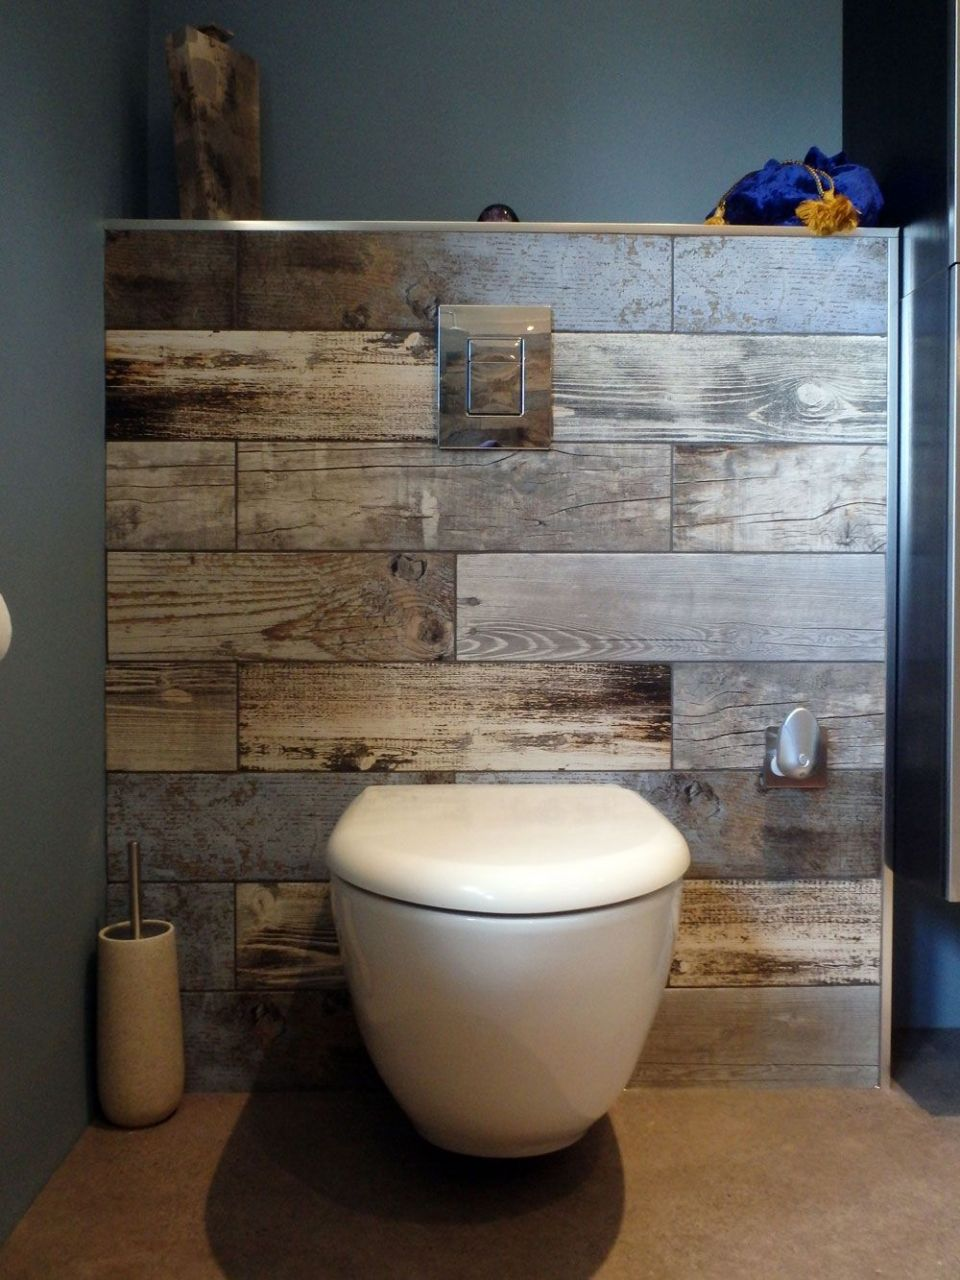 50 Cost Of Installing A Bathroom Upstairs Check More At Https Www Michelenails Com 99 Cost Of Installing A Ba Tile Bathroom Wood Wall Bathroom Wood Bathroom